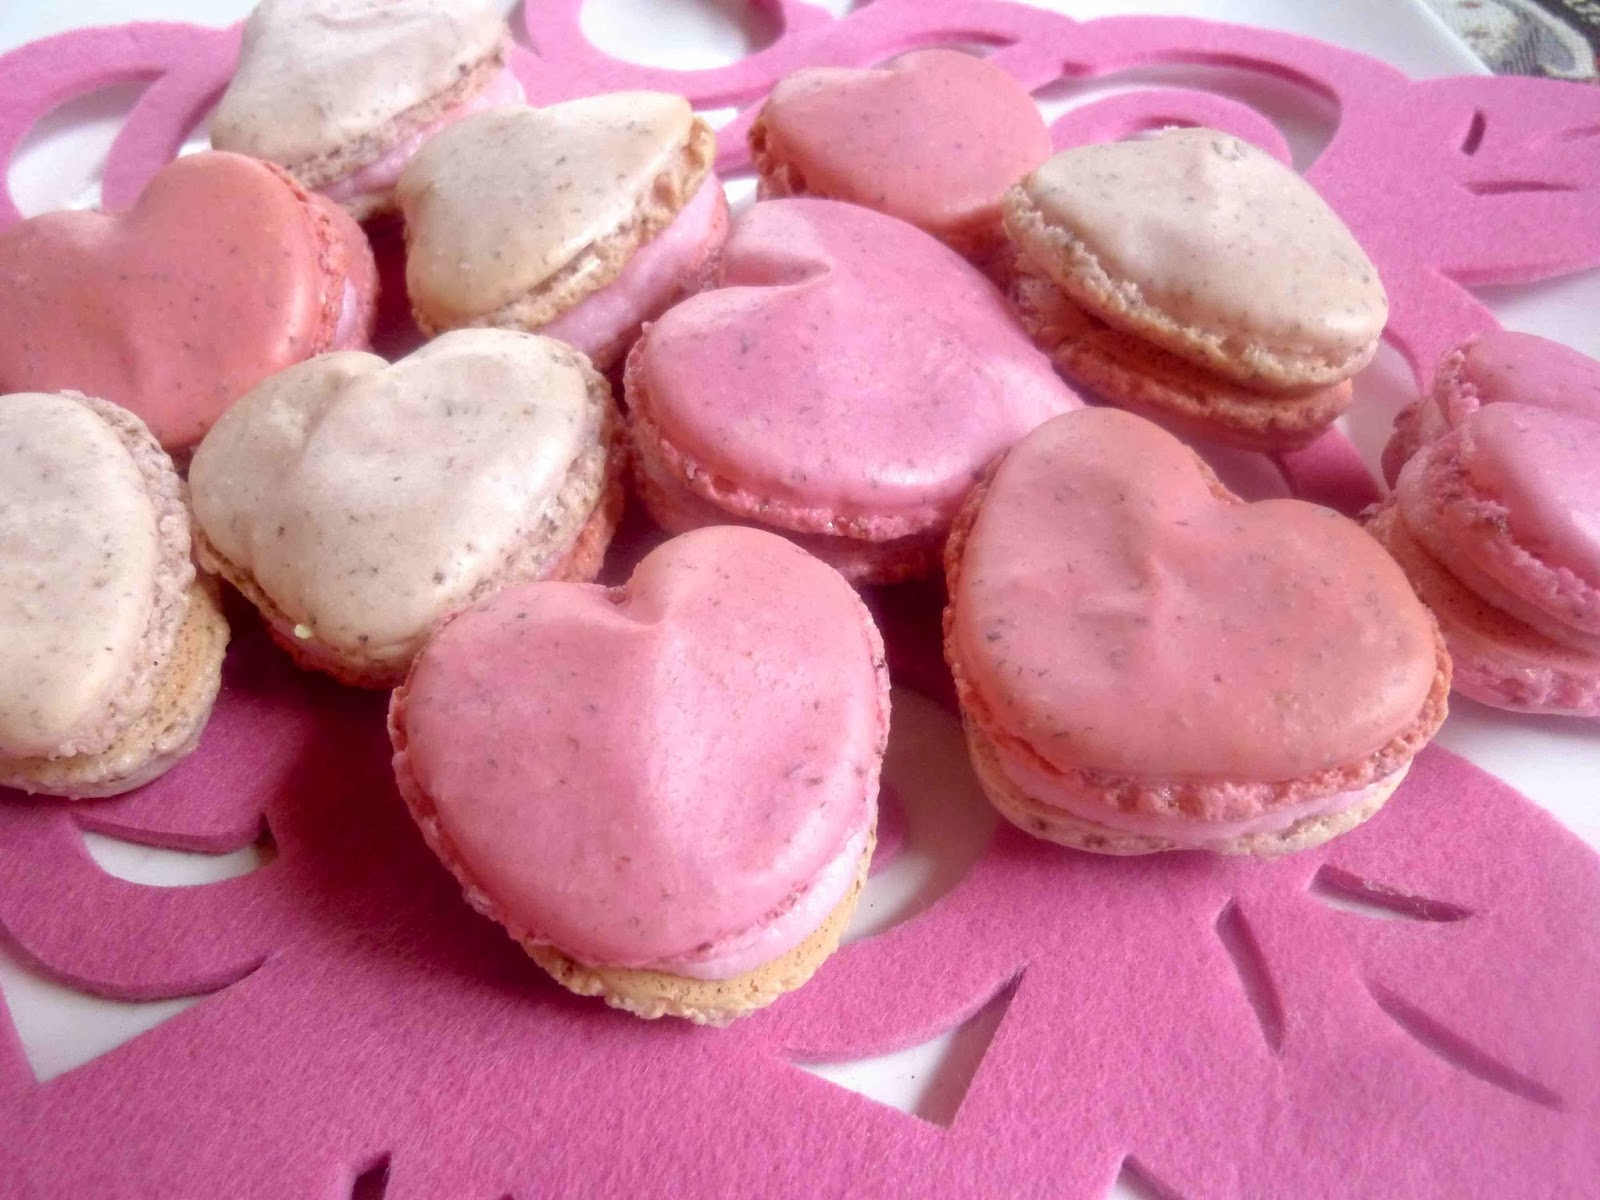 ... Pink Heart French Macarons with Raspberry Vanilla buttercream Filling